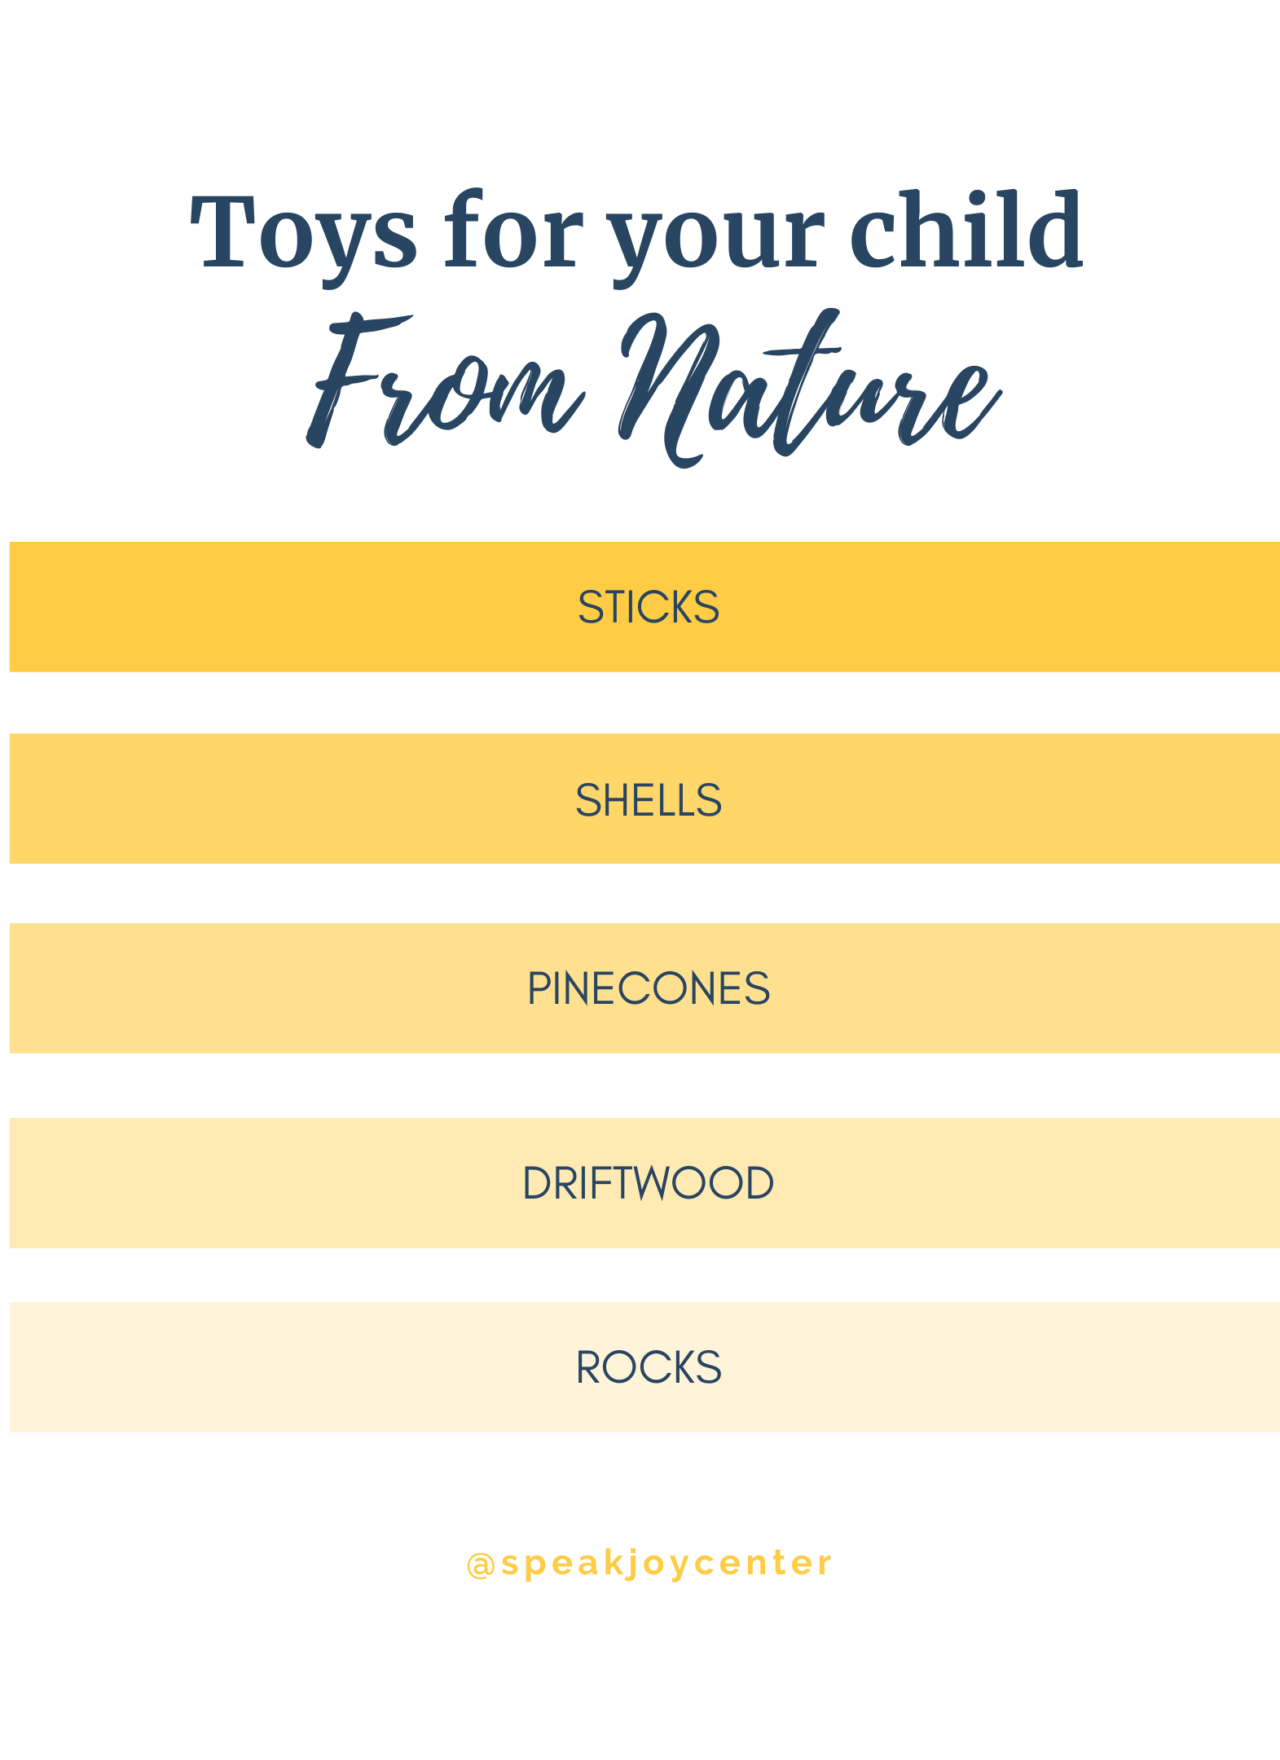 Toys from Nature